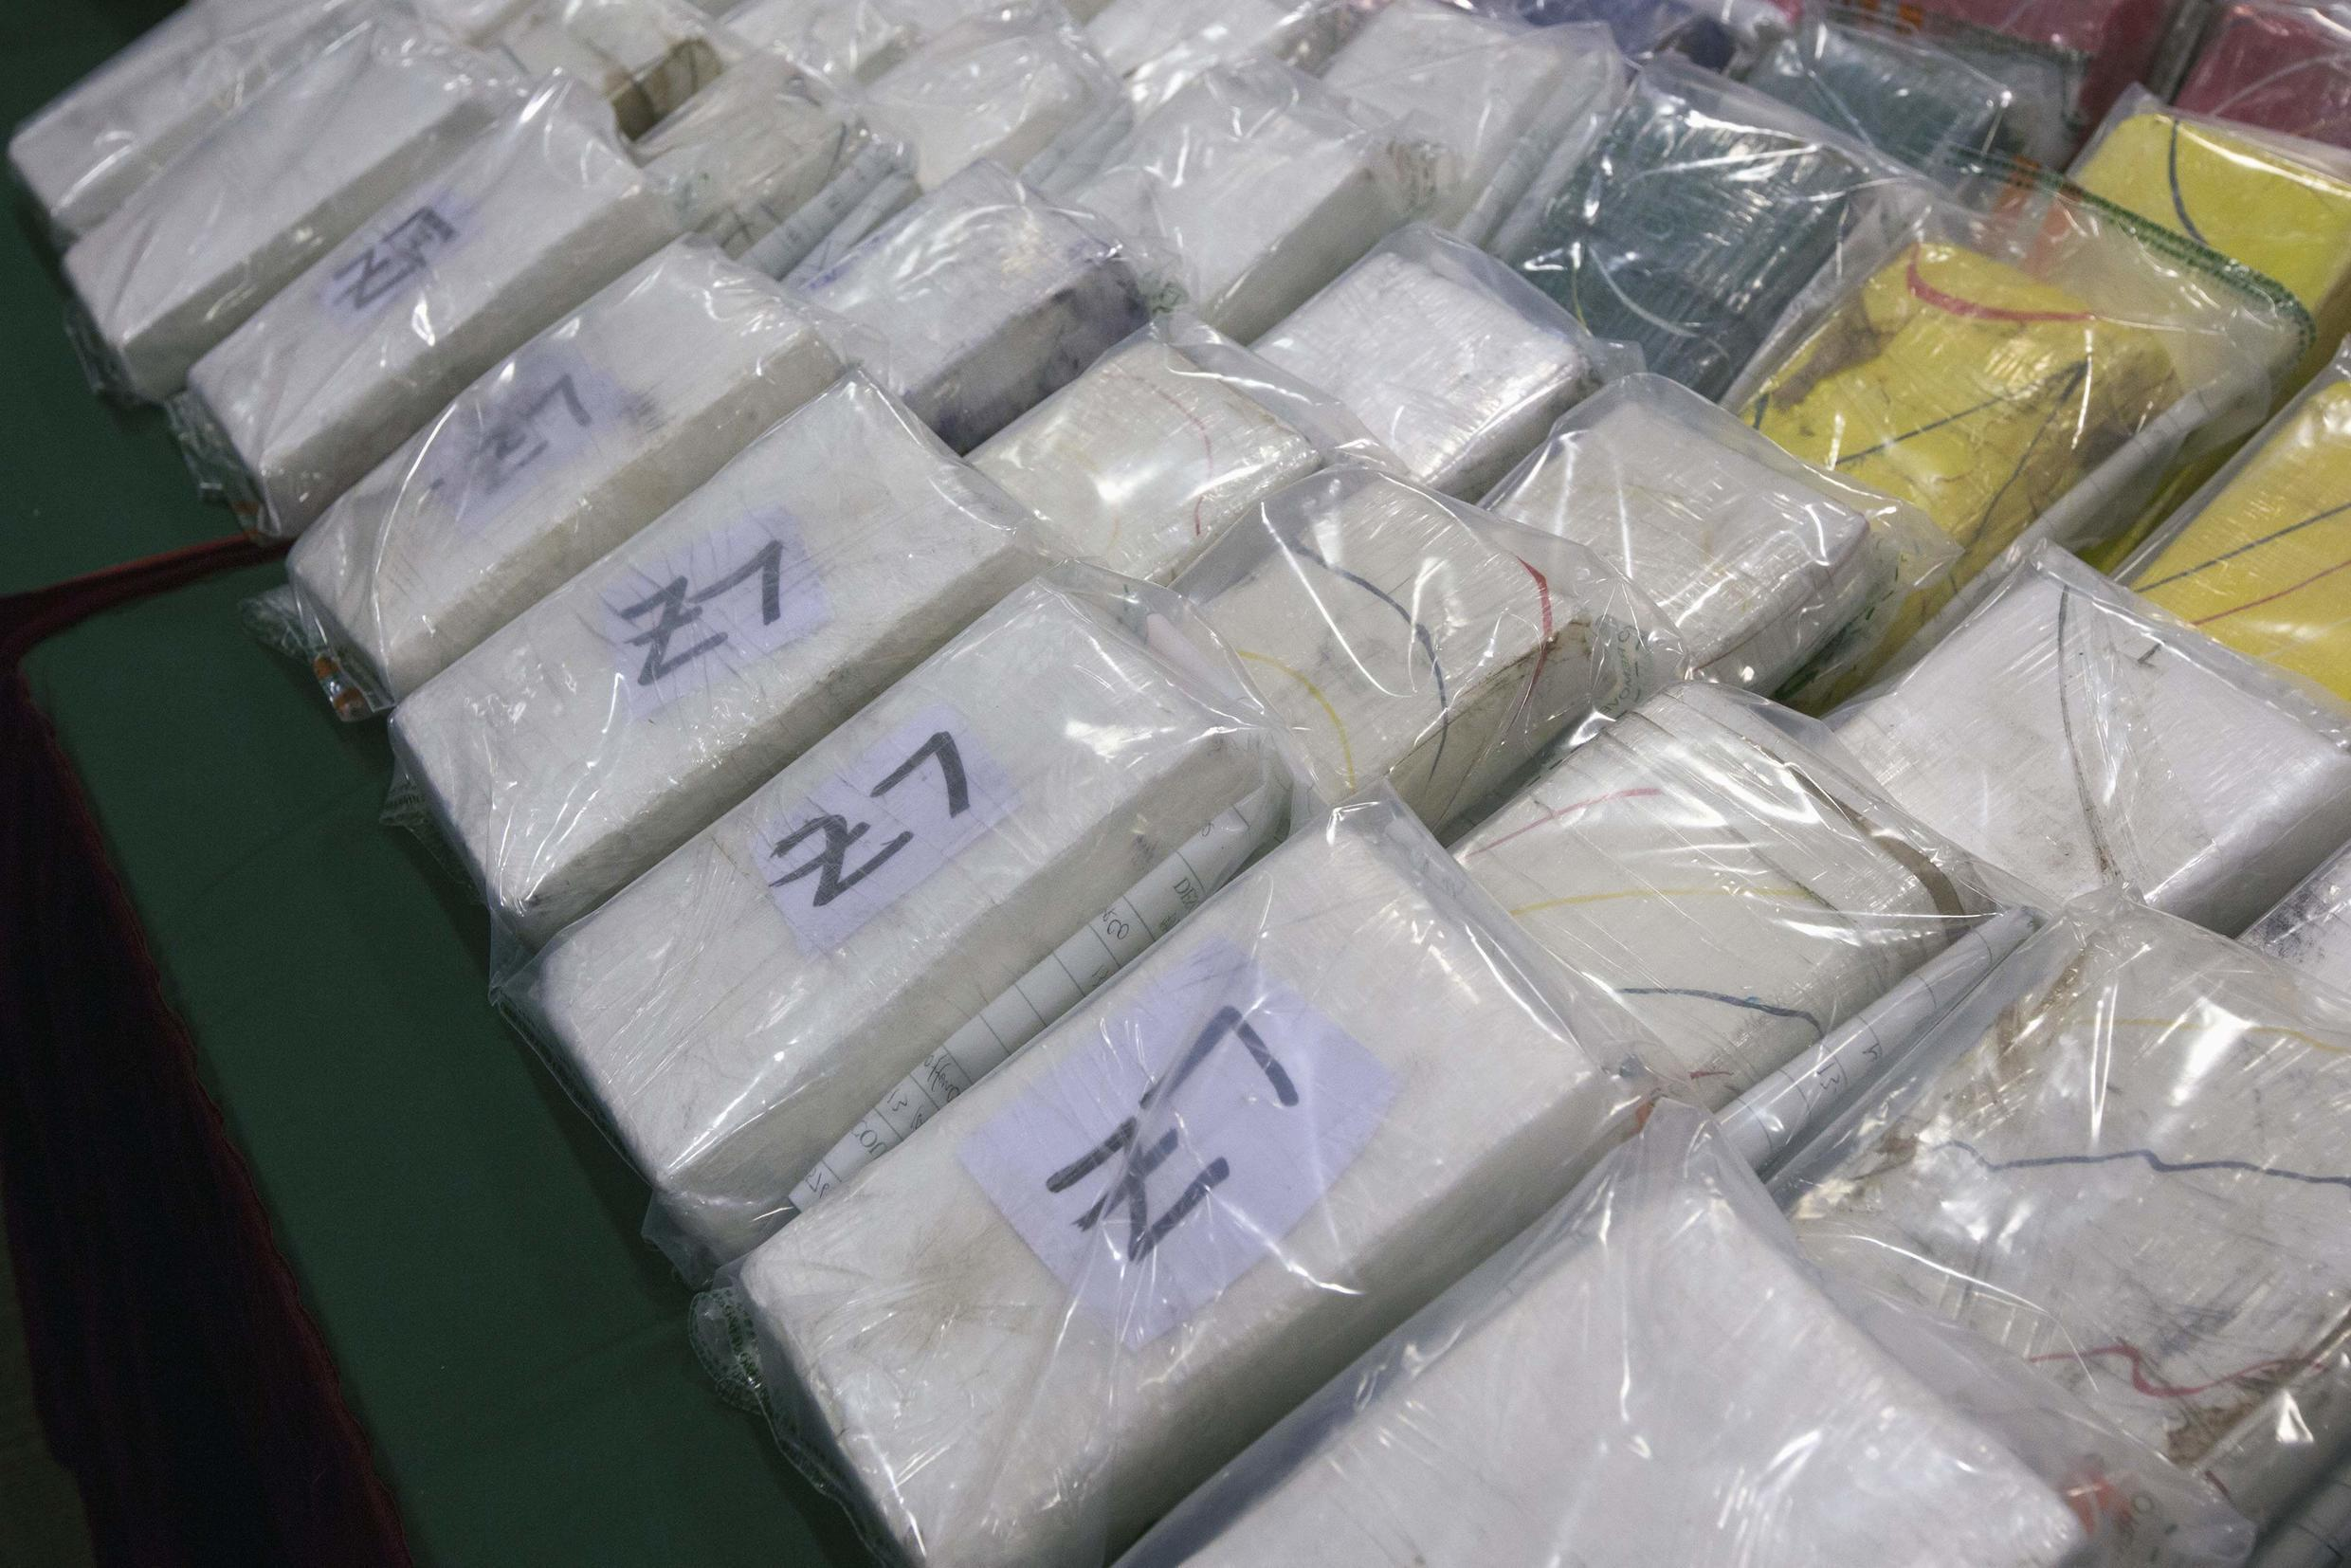 Cocaine seized by customs officers